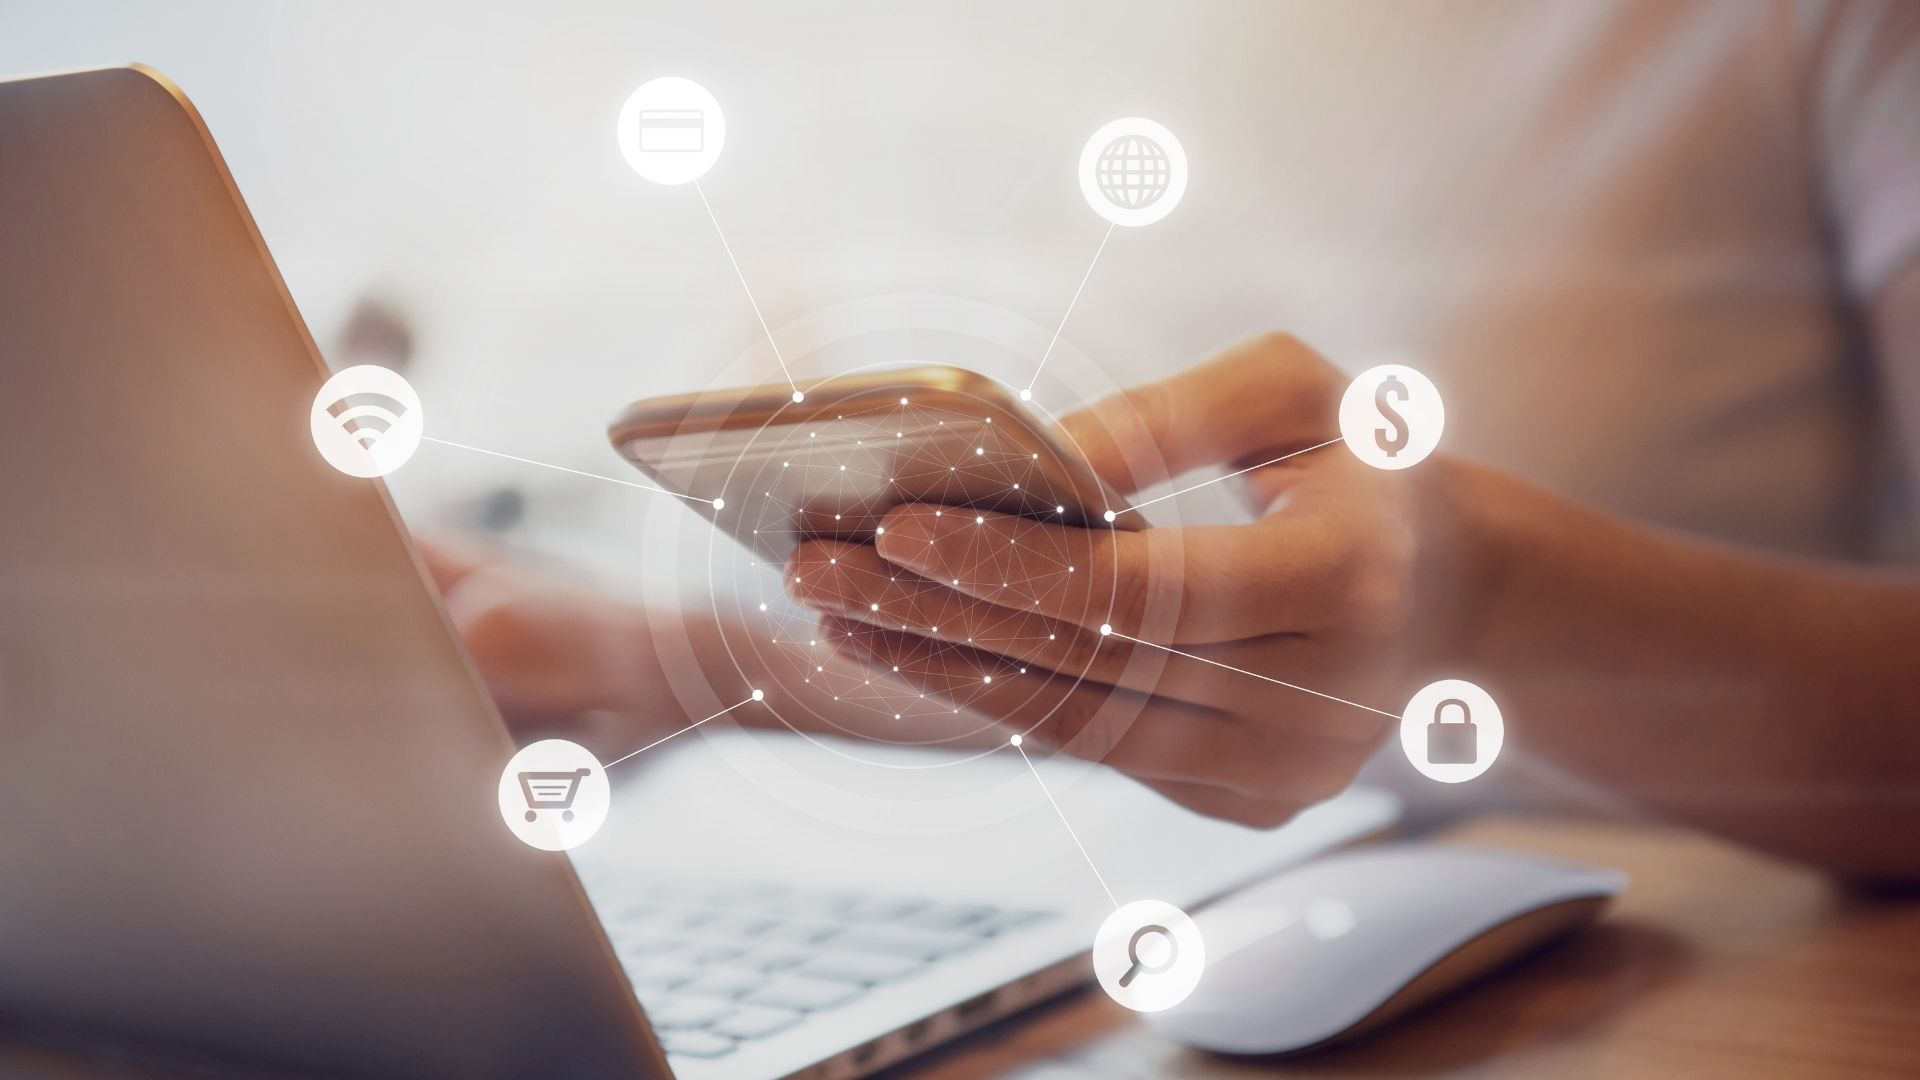 In a Digital World, What is the Future for Community Banking? 14